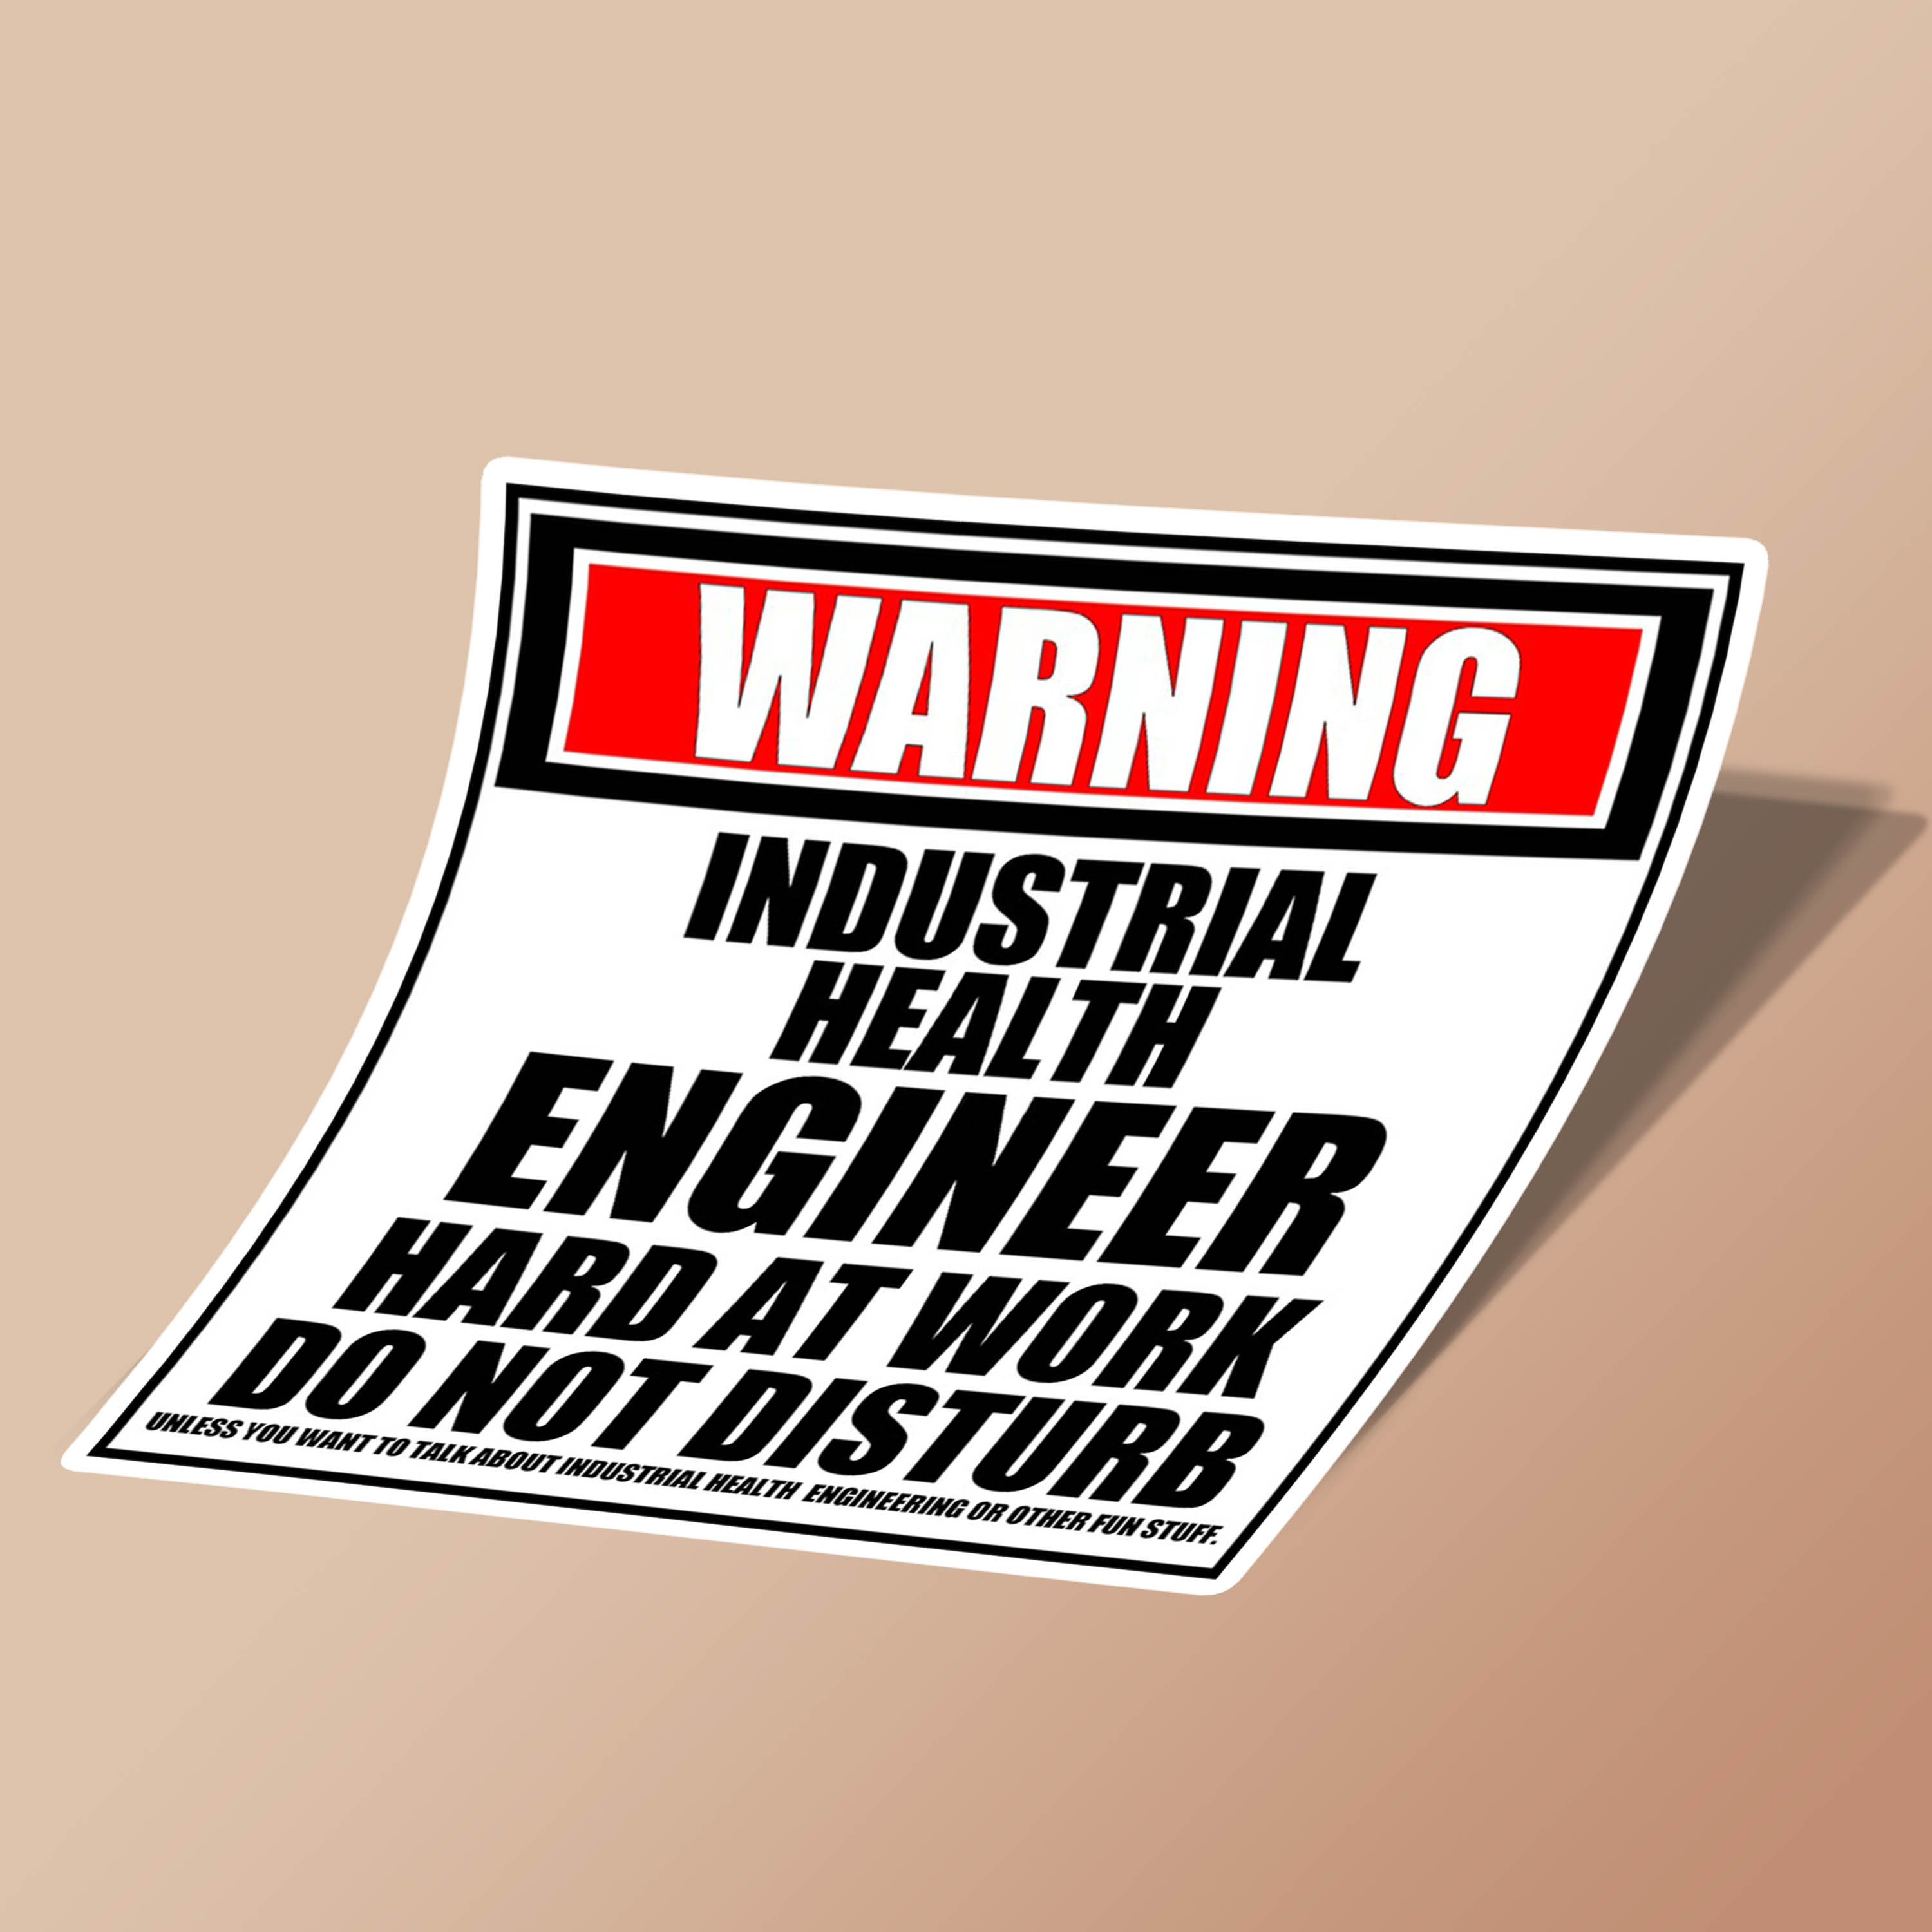 Warning Industrial Health Engineer Hard At Work Do Not Disturb